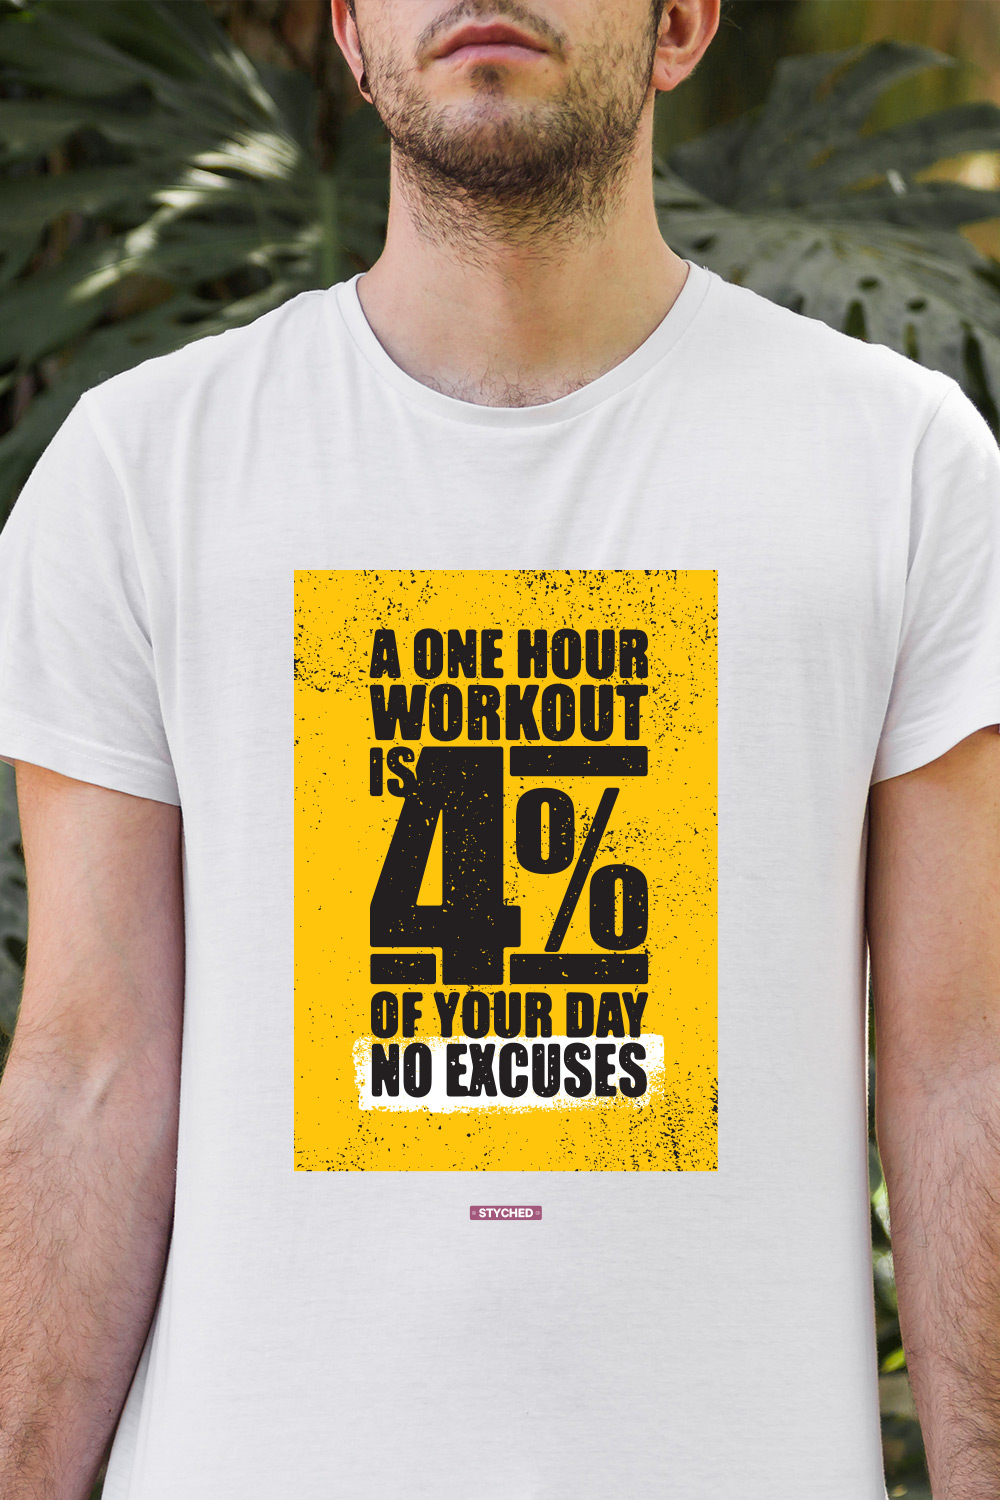 f8e8abe19 WORKOUT, A One Hour Workout is 4% of your Day. No Excuses. Graphic T-Shirt  White Color